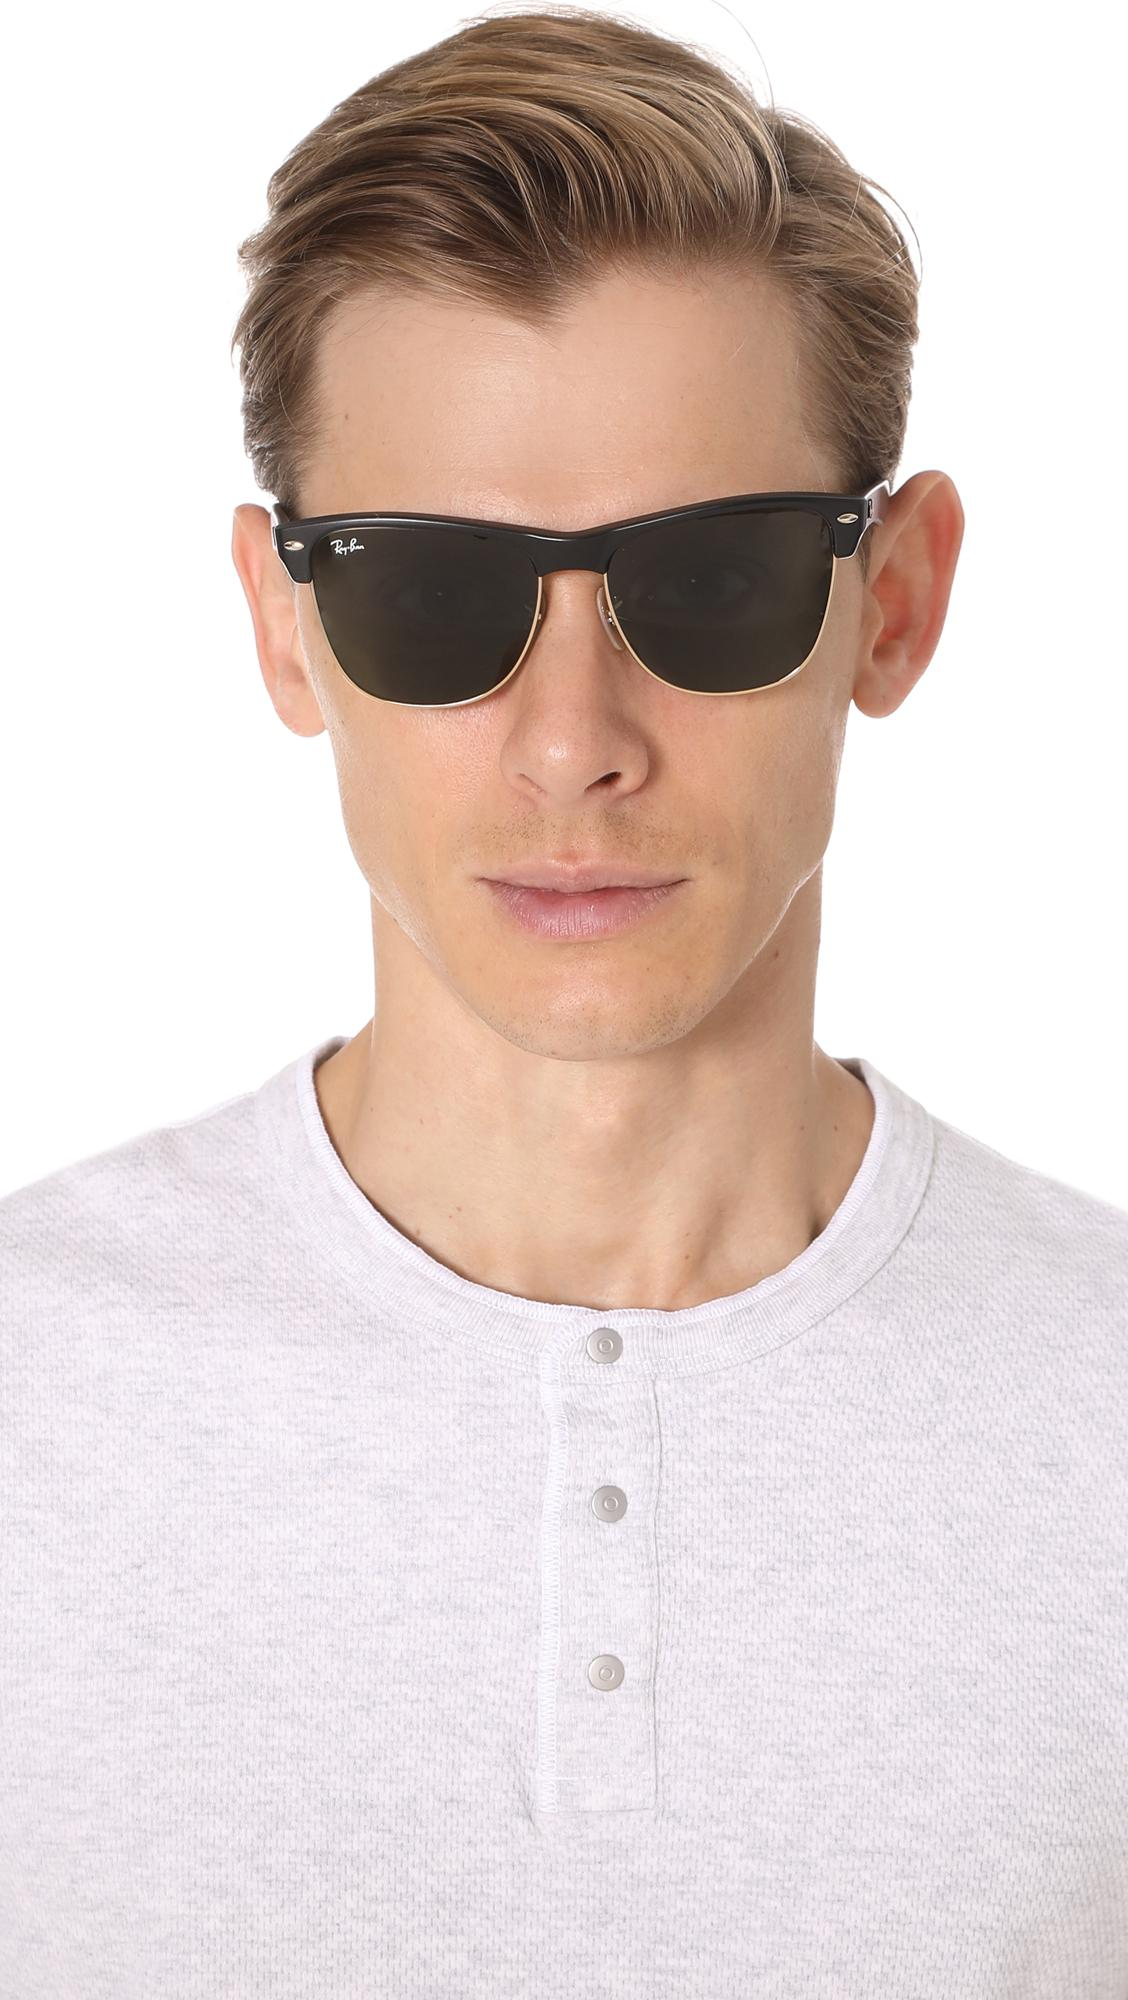 4b97704724a Ray-Ban - Black Clubmaster Oversized Sunglasses for Men - Lyst. View  fullscreen